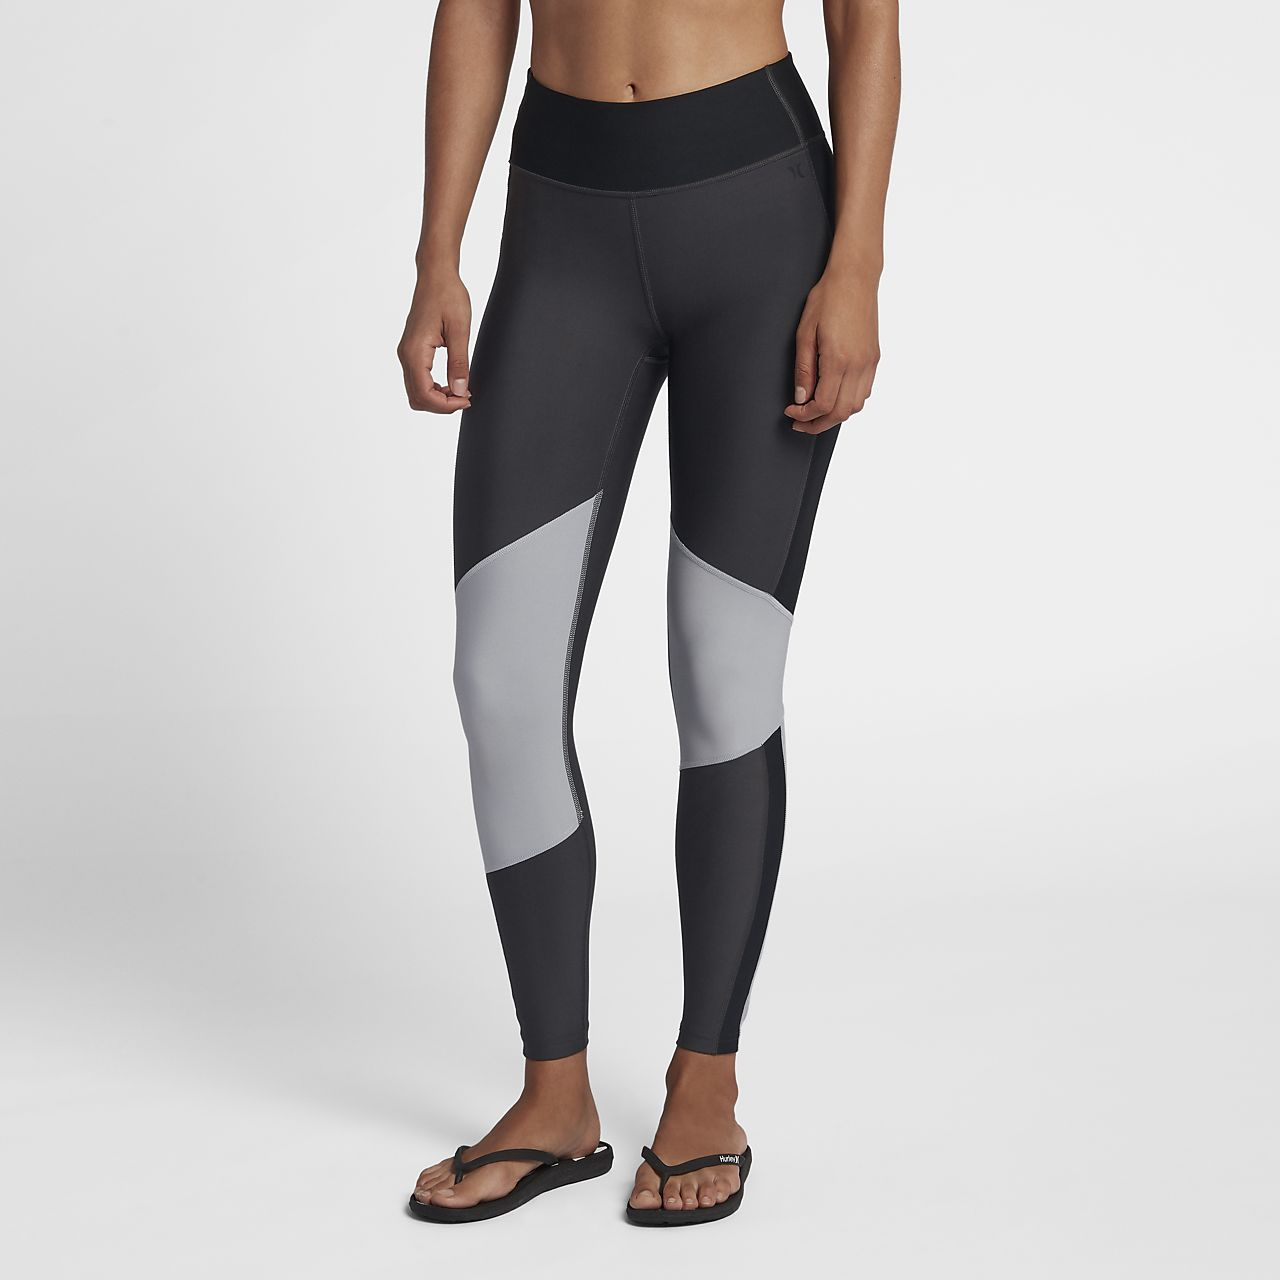 Hurley Street Ready Women's Surf Leggings